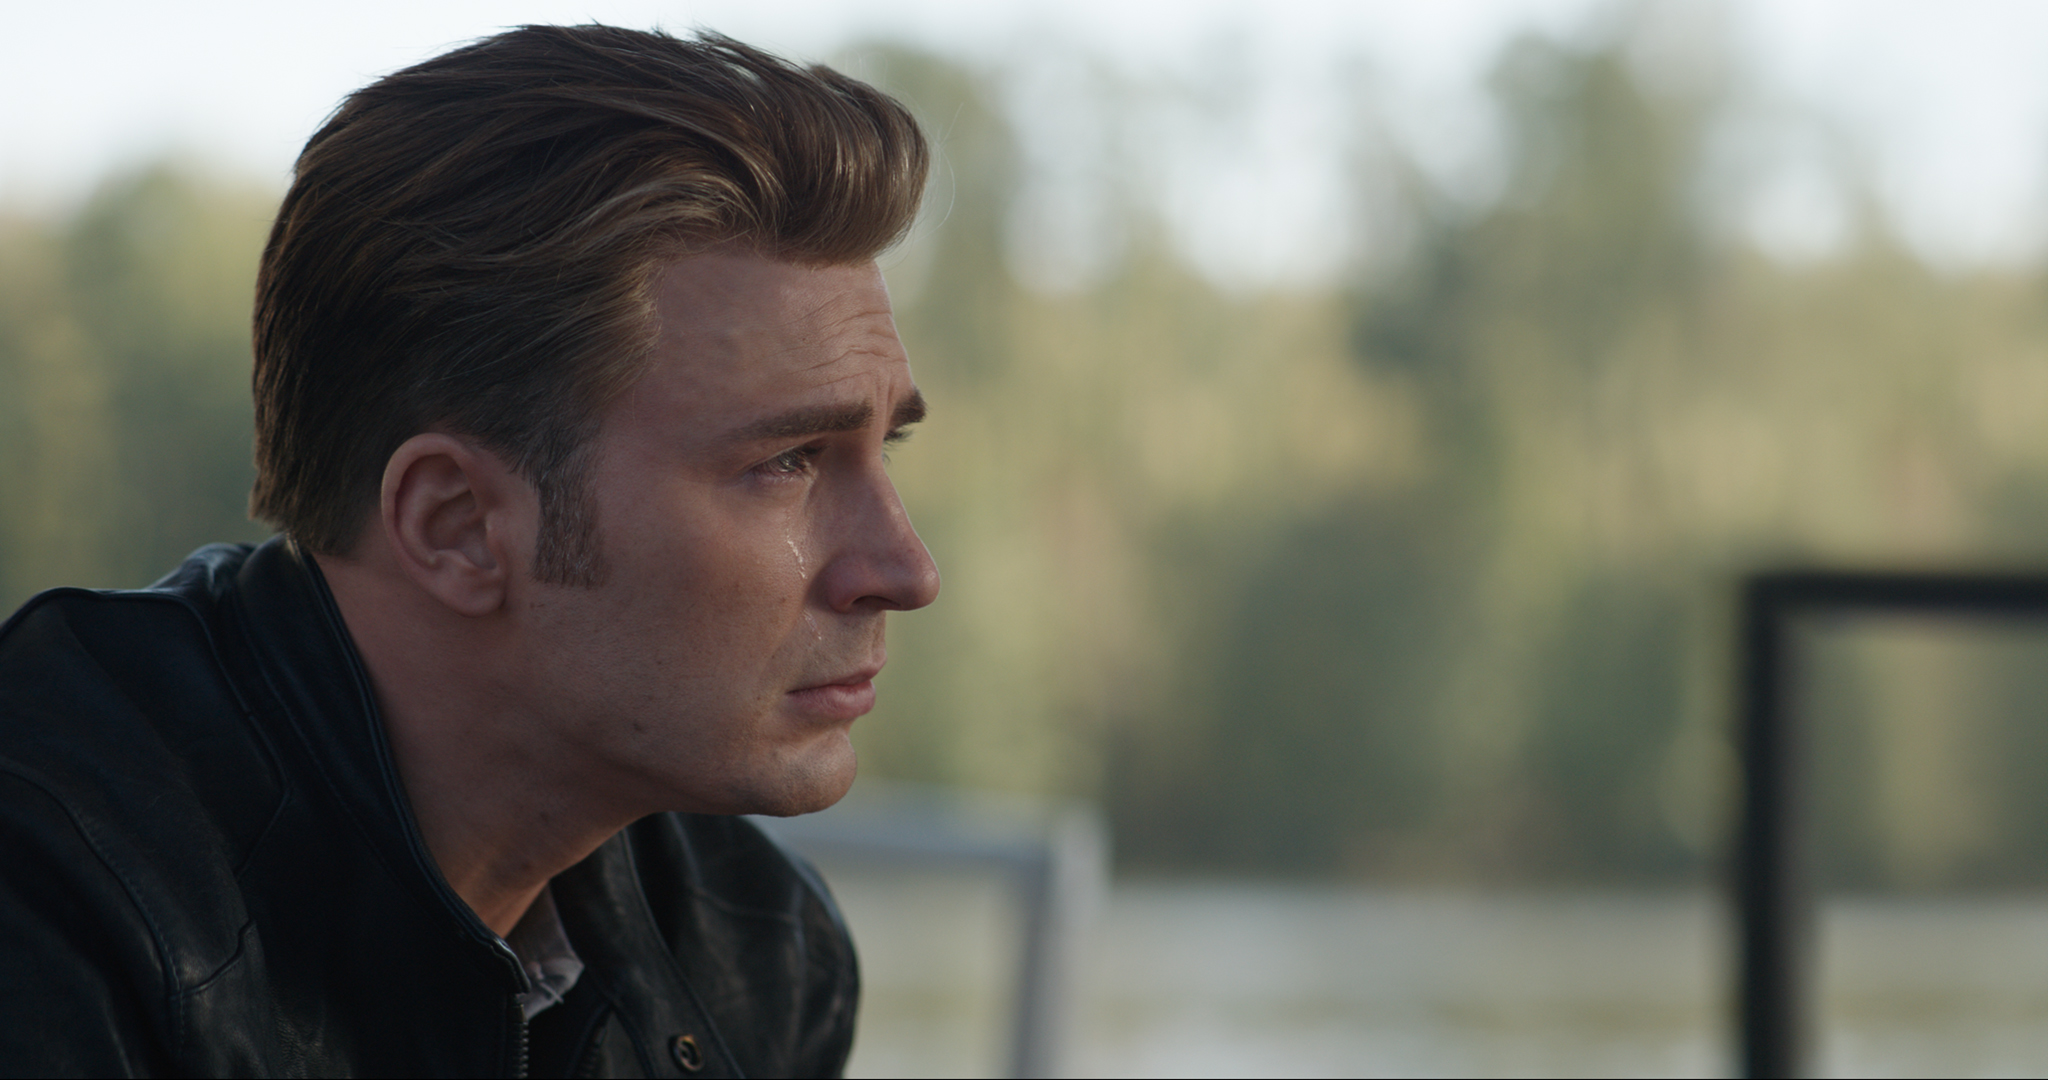 Captain America sheds a single tear over [redacted].